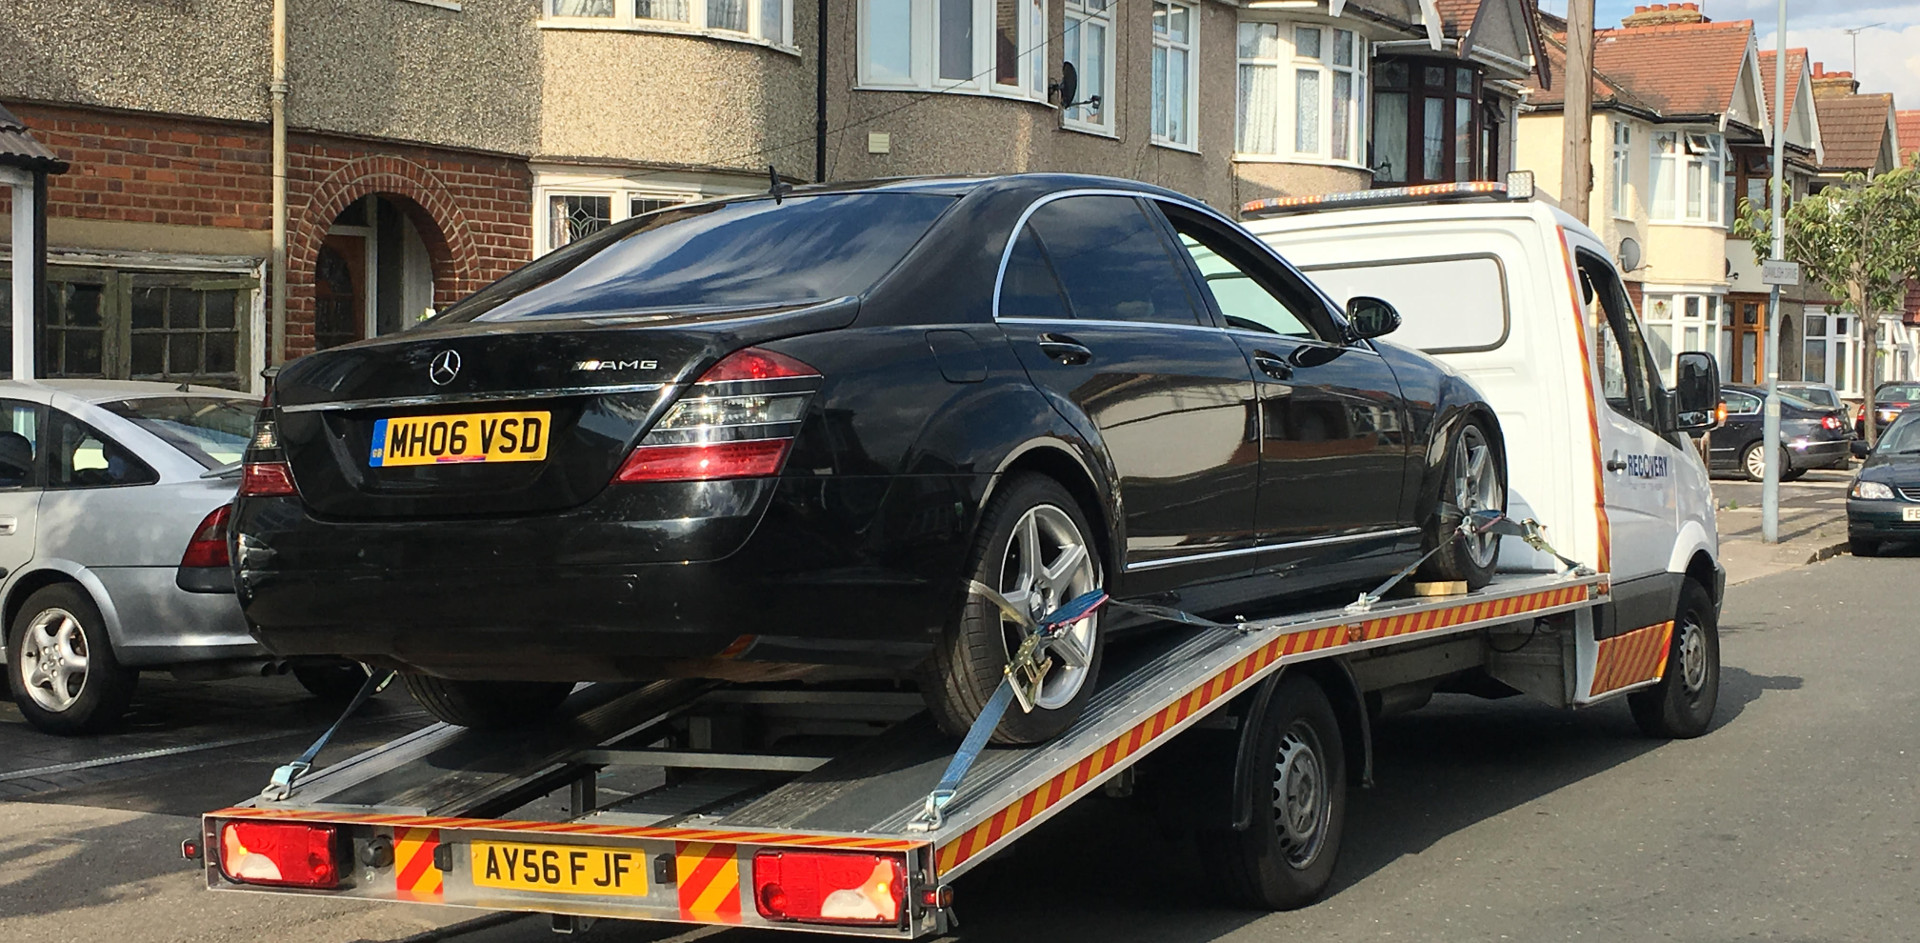 Towing Services London